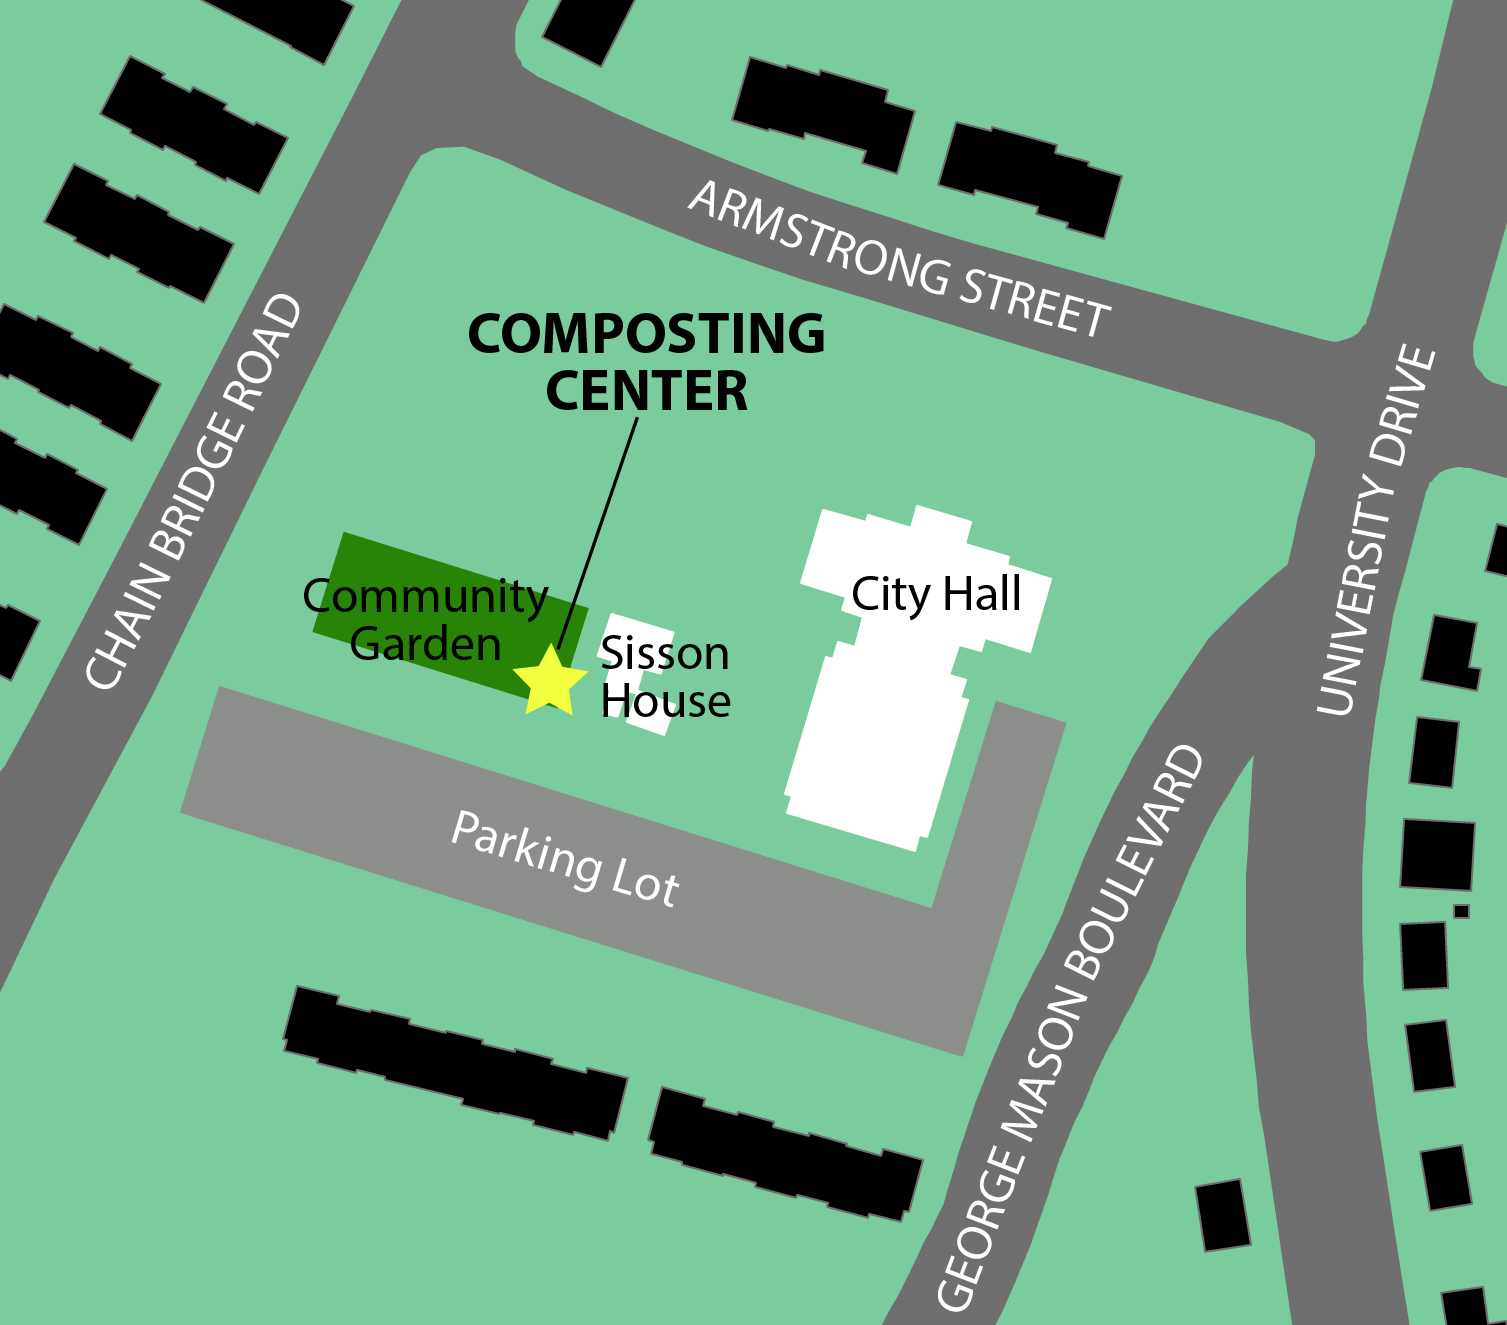 Composting Center Location 10 04 2018 v2